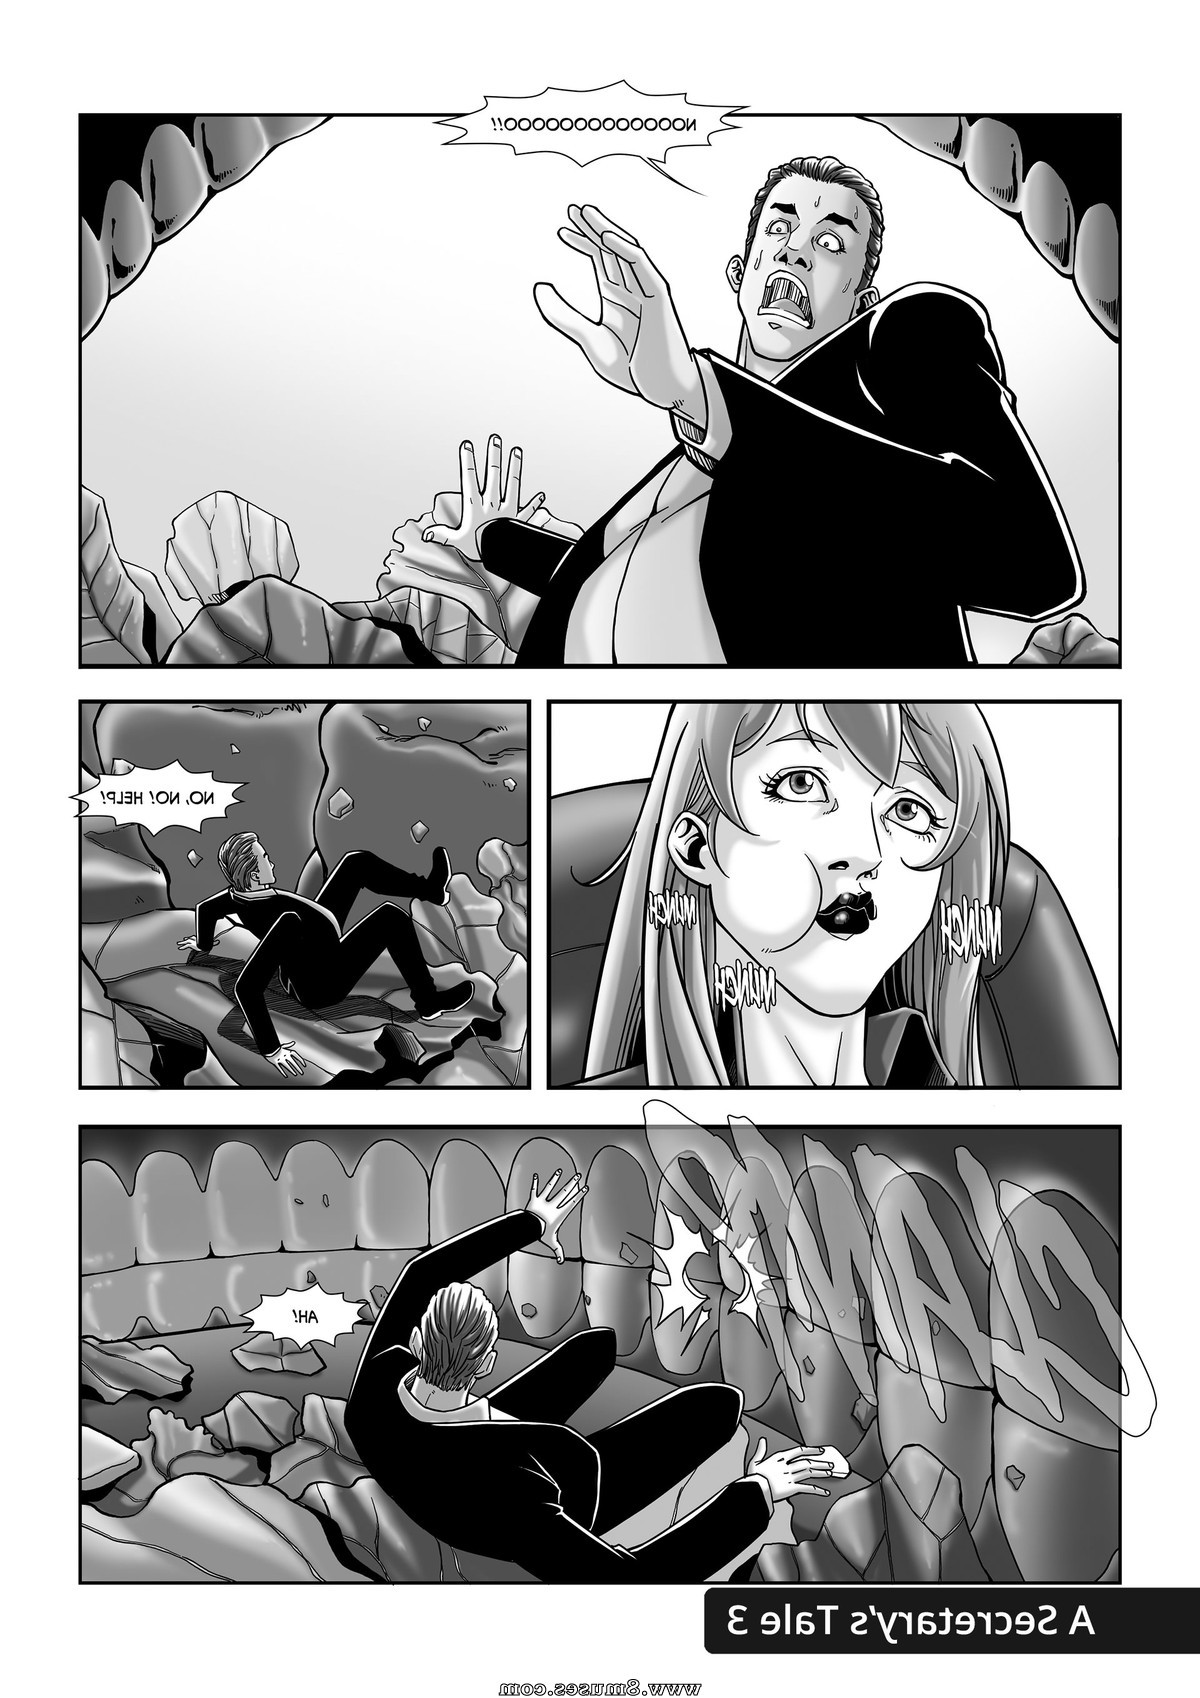 Giantess-Fan-Comics/Bigger-Than-This/Issue-4 Bigger_Than_This_-_Issue_4_19.jpg